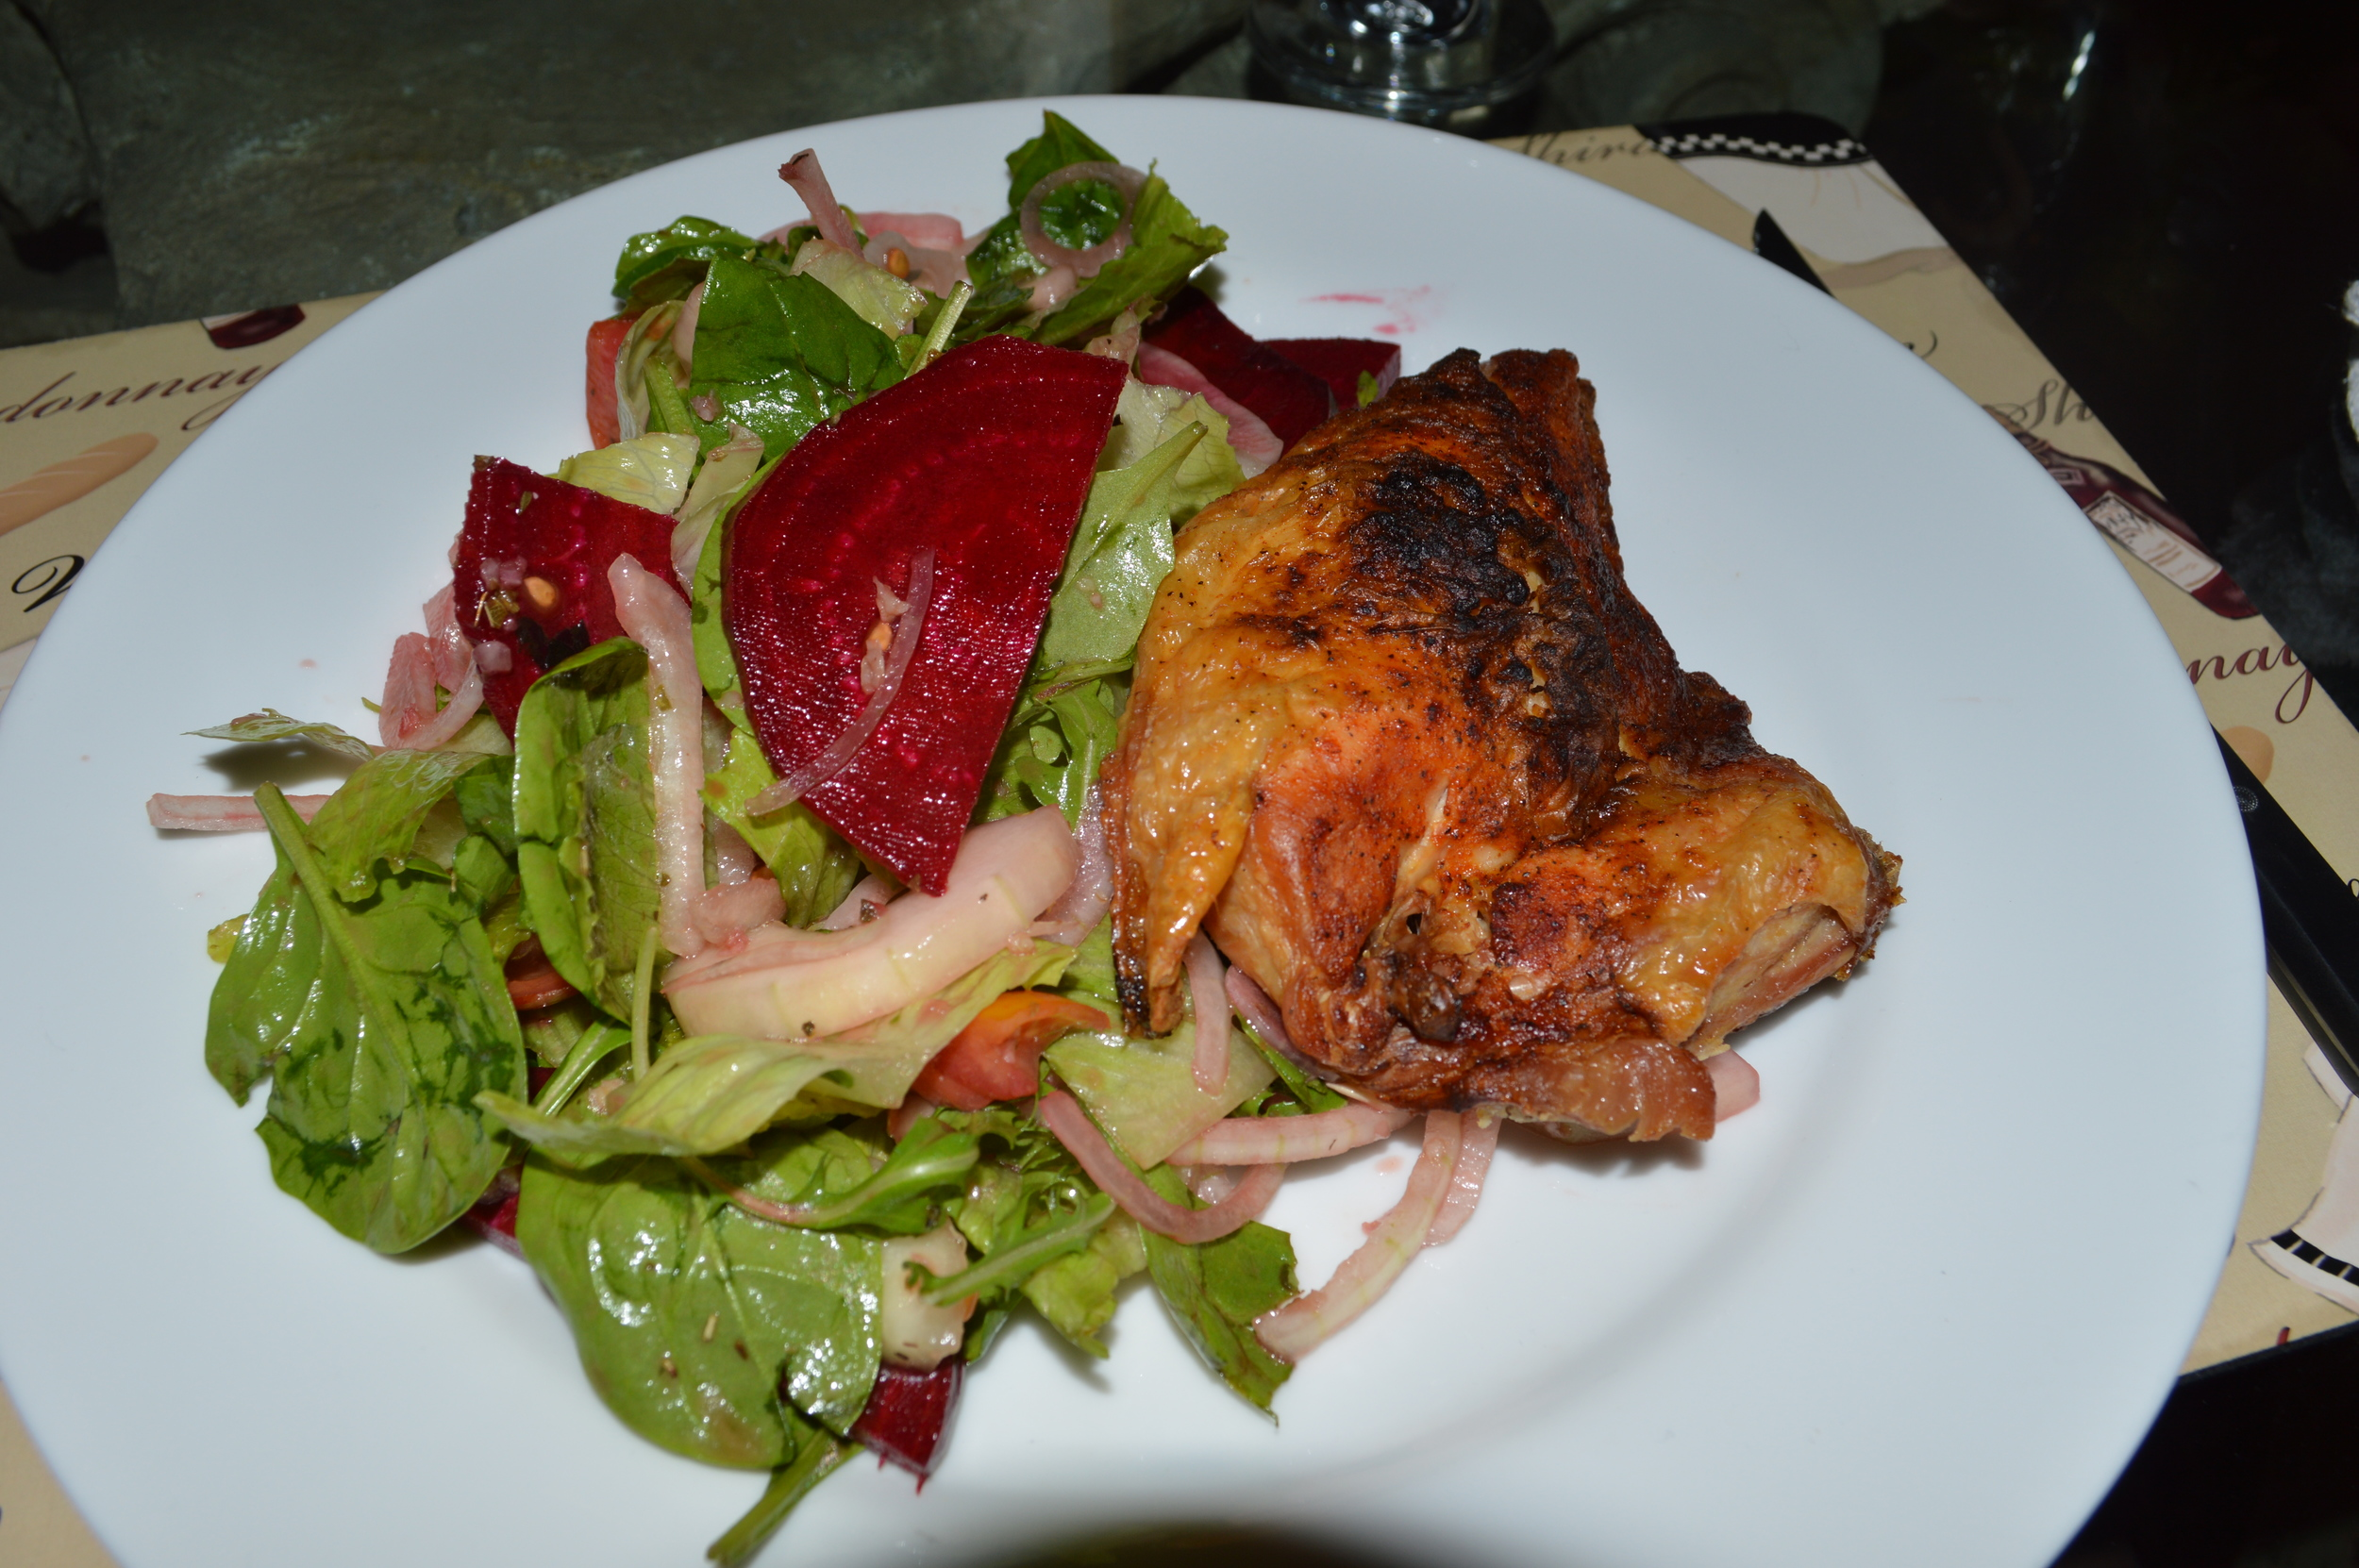 Baked Chicken & Salad